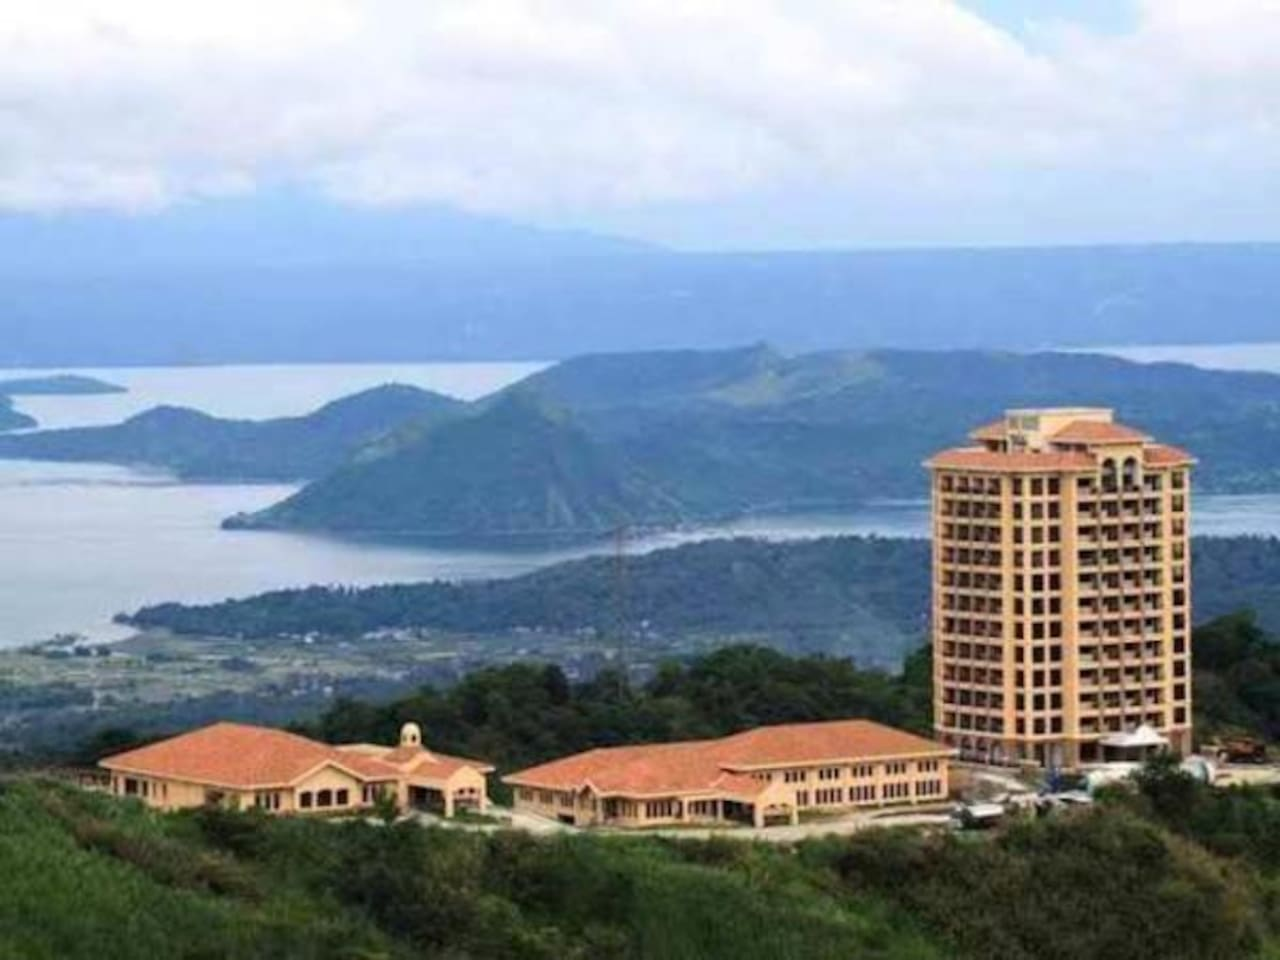 Overall view of SplendidoTower 1, the clubhouse dining & sports bldg and the magnificent taal volcano within taal lake.